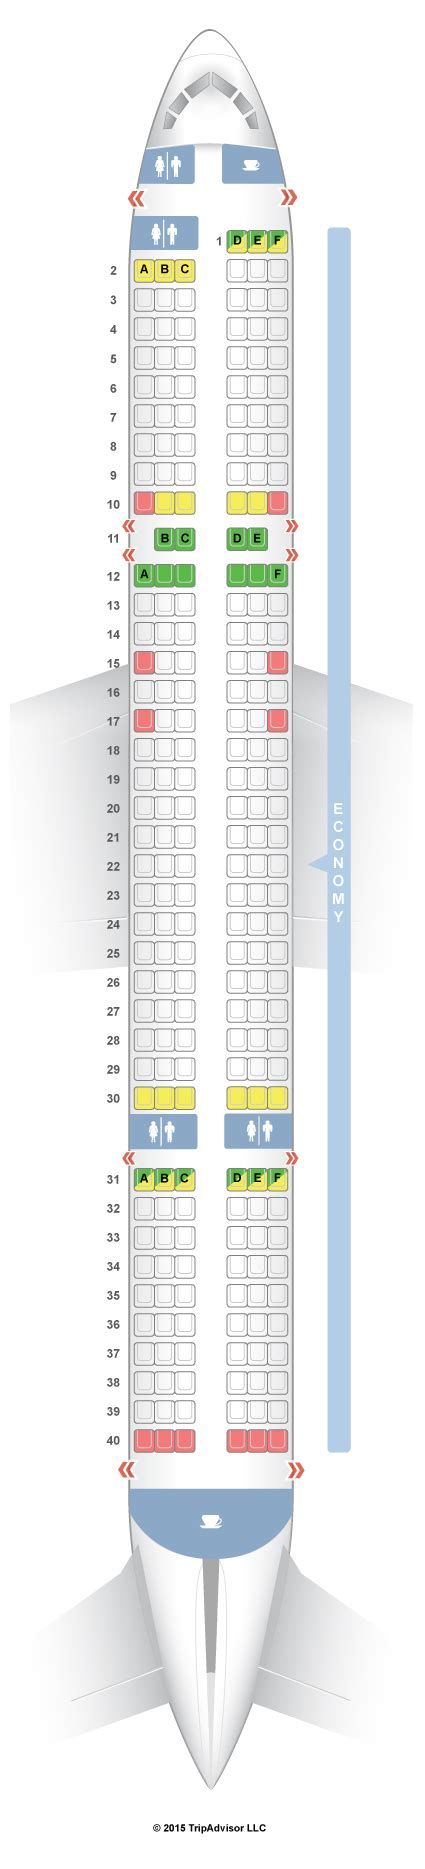 thomson seat cl seat map thomson dreamliner brokeasshome